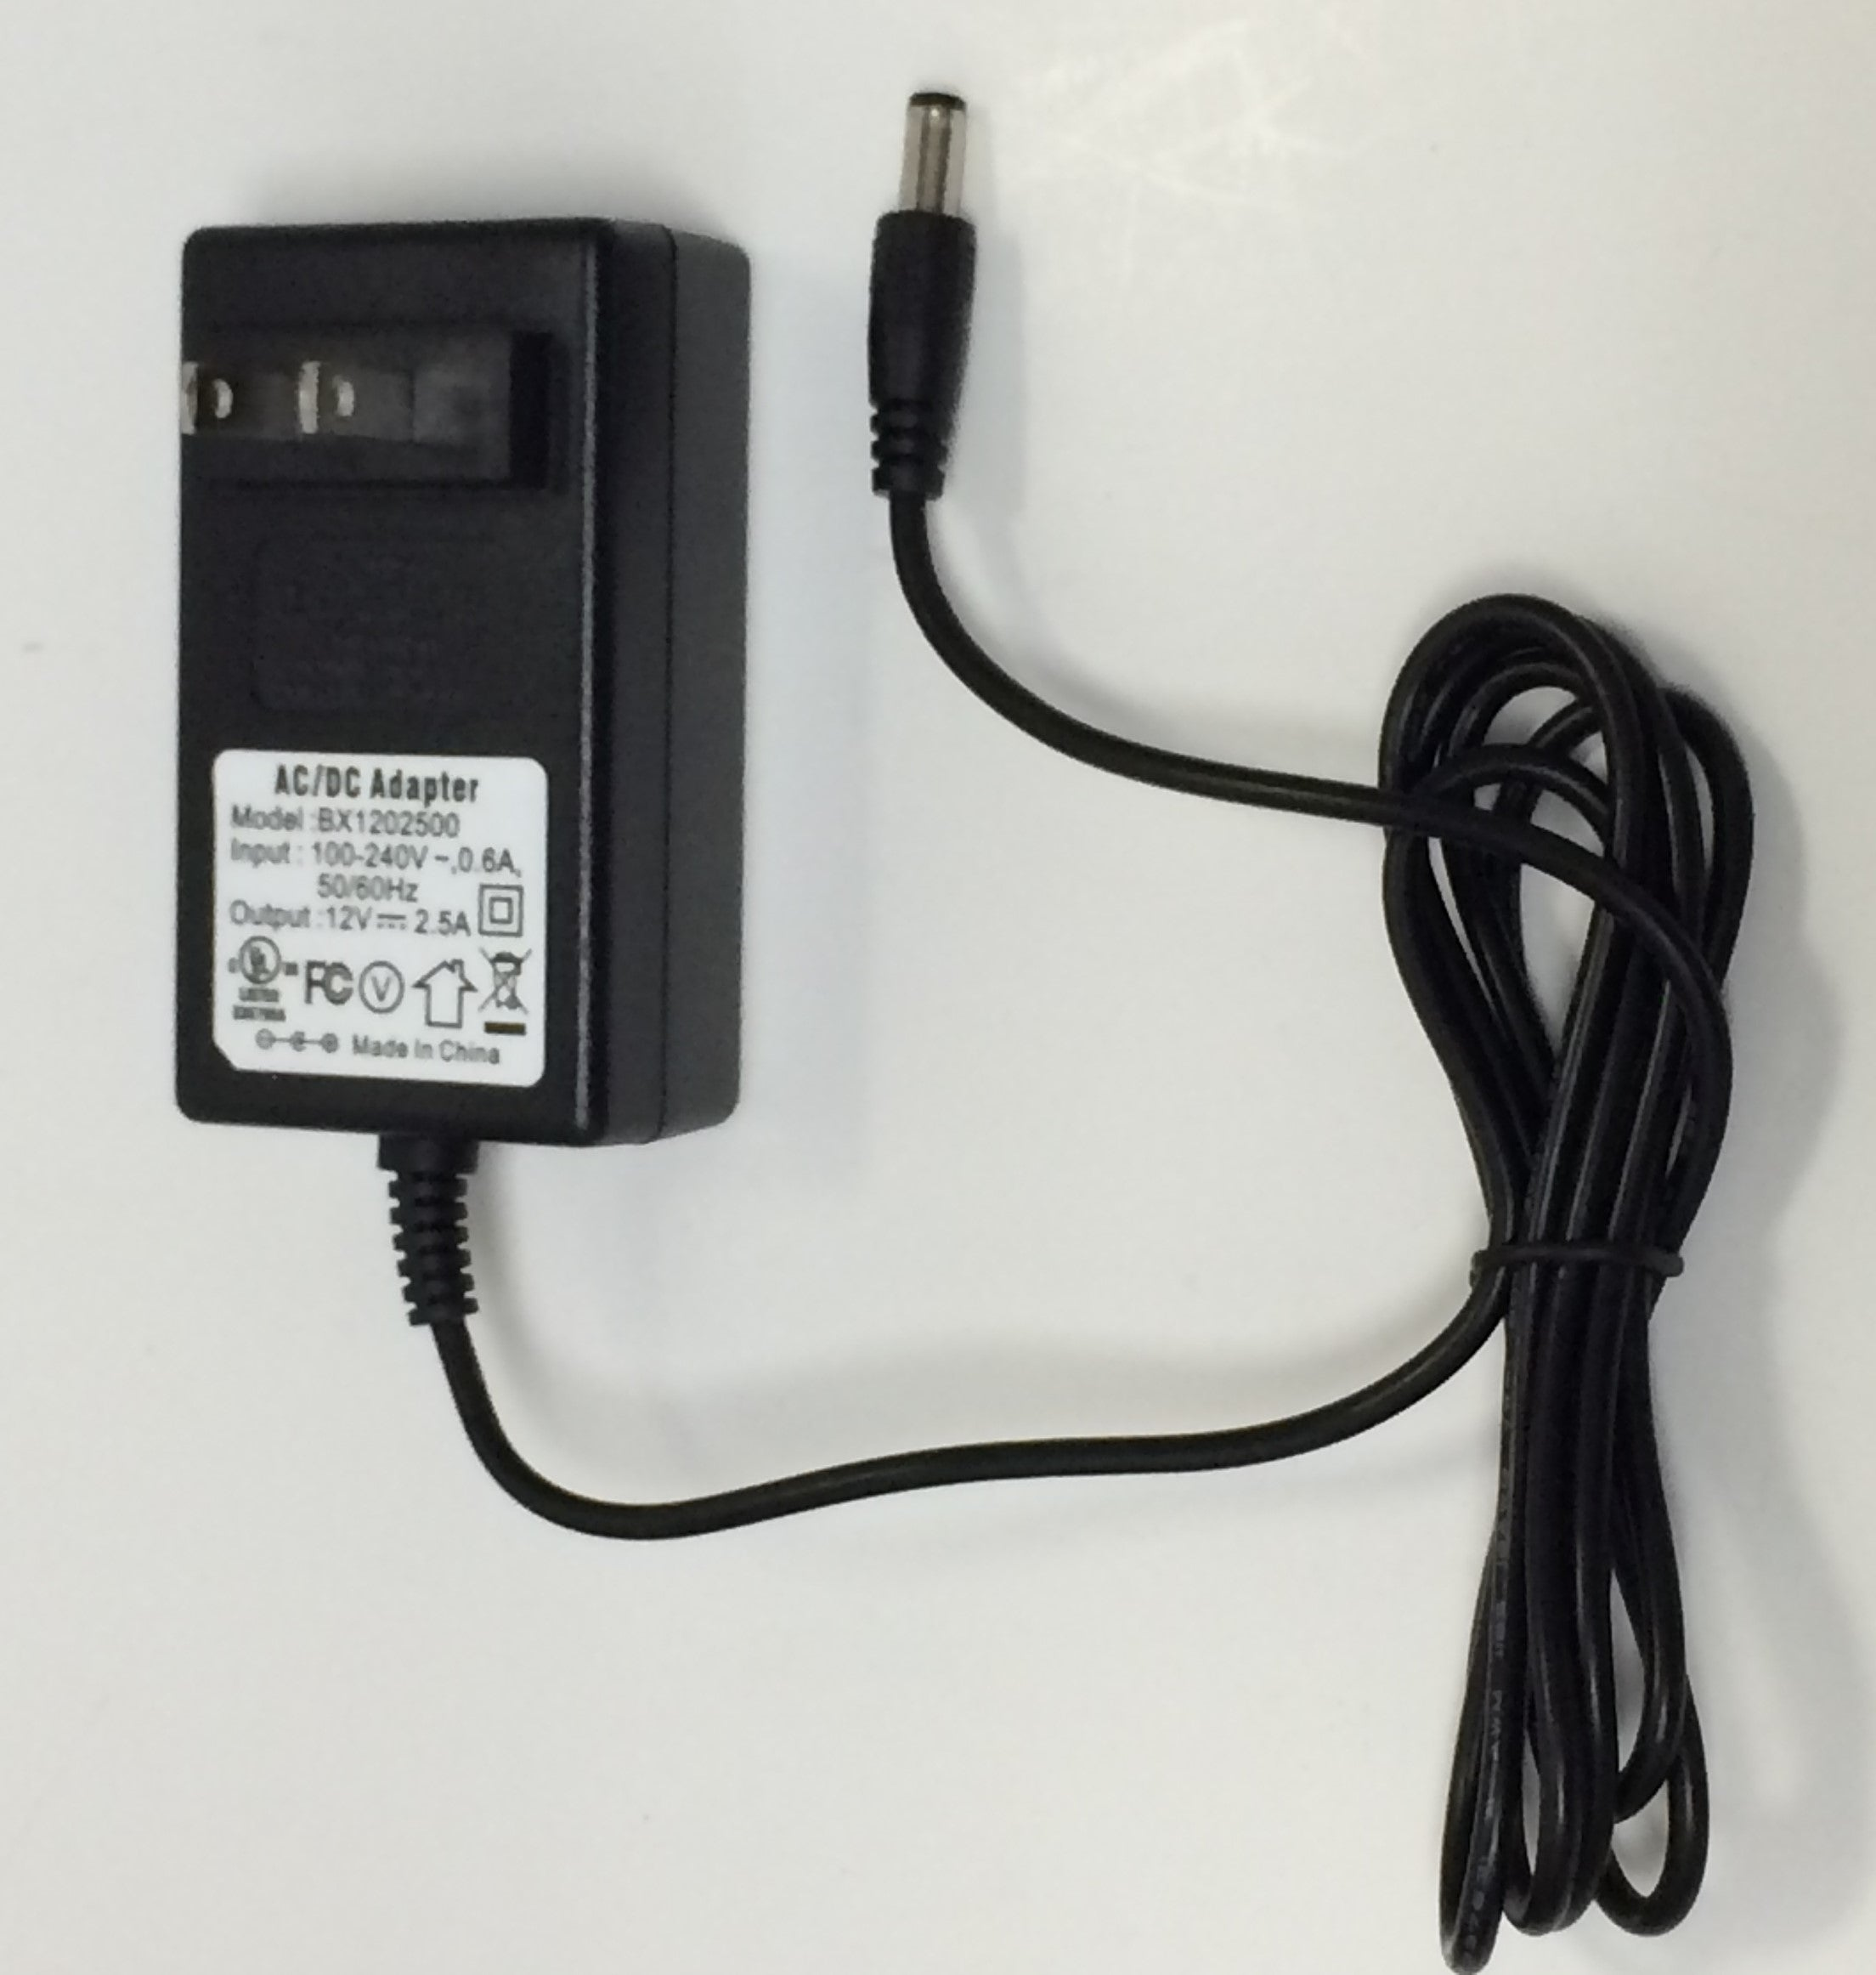 AC/DC Adapter For Lorex Model: BX1202500 DVR Security System